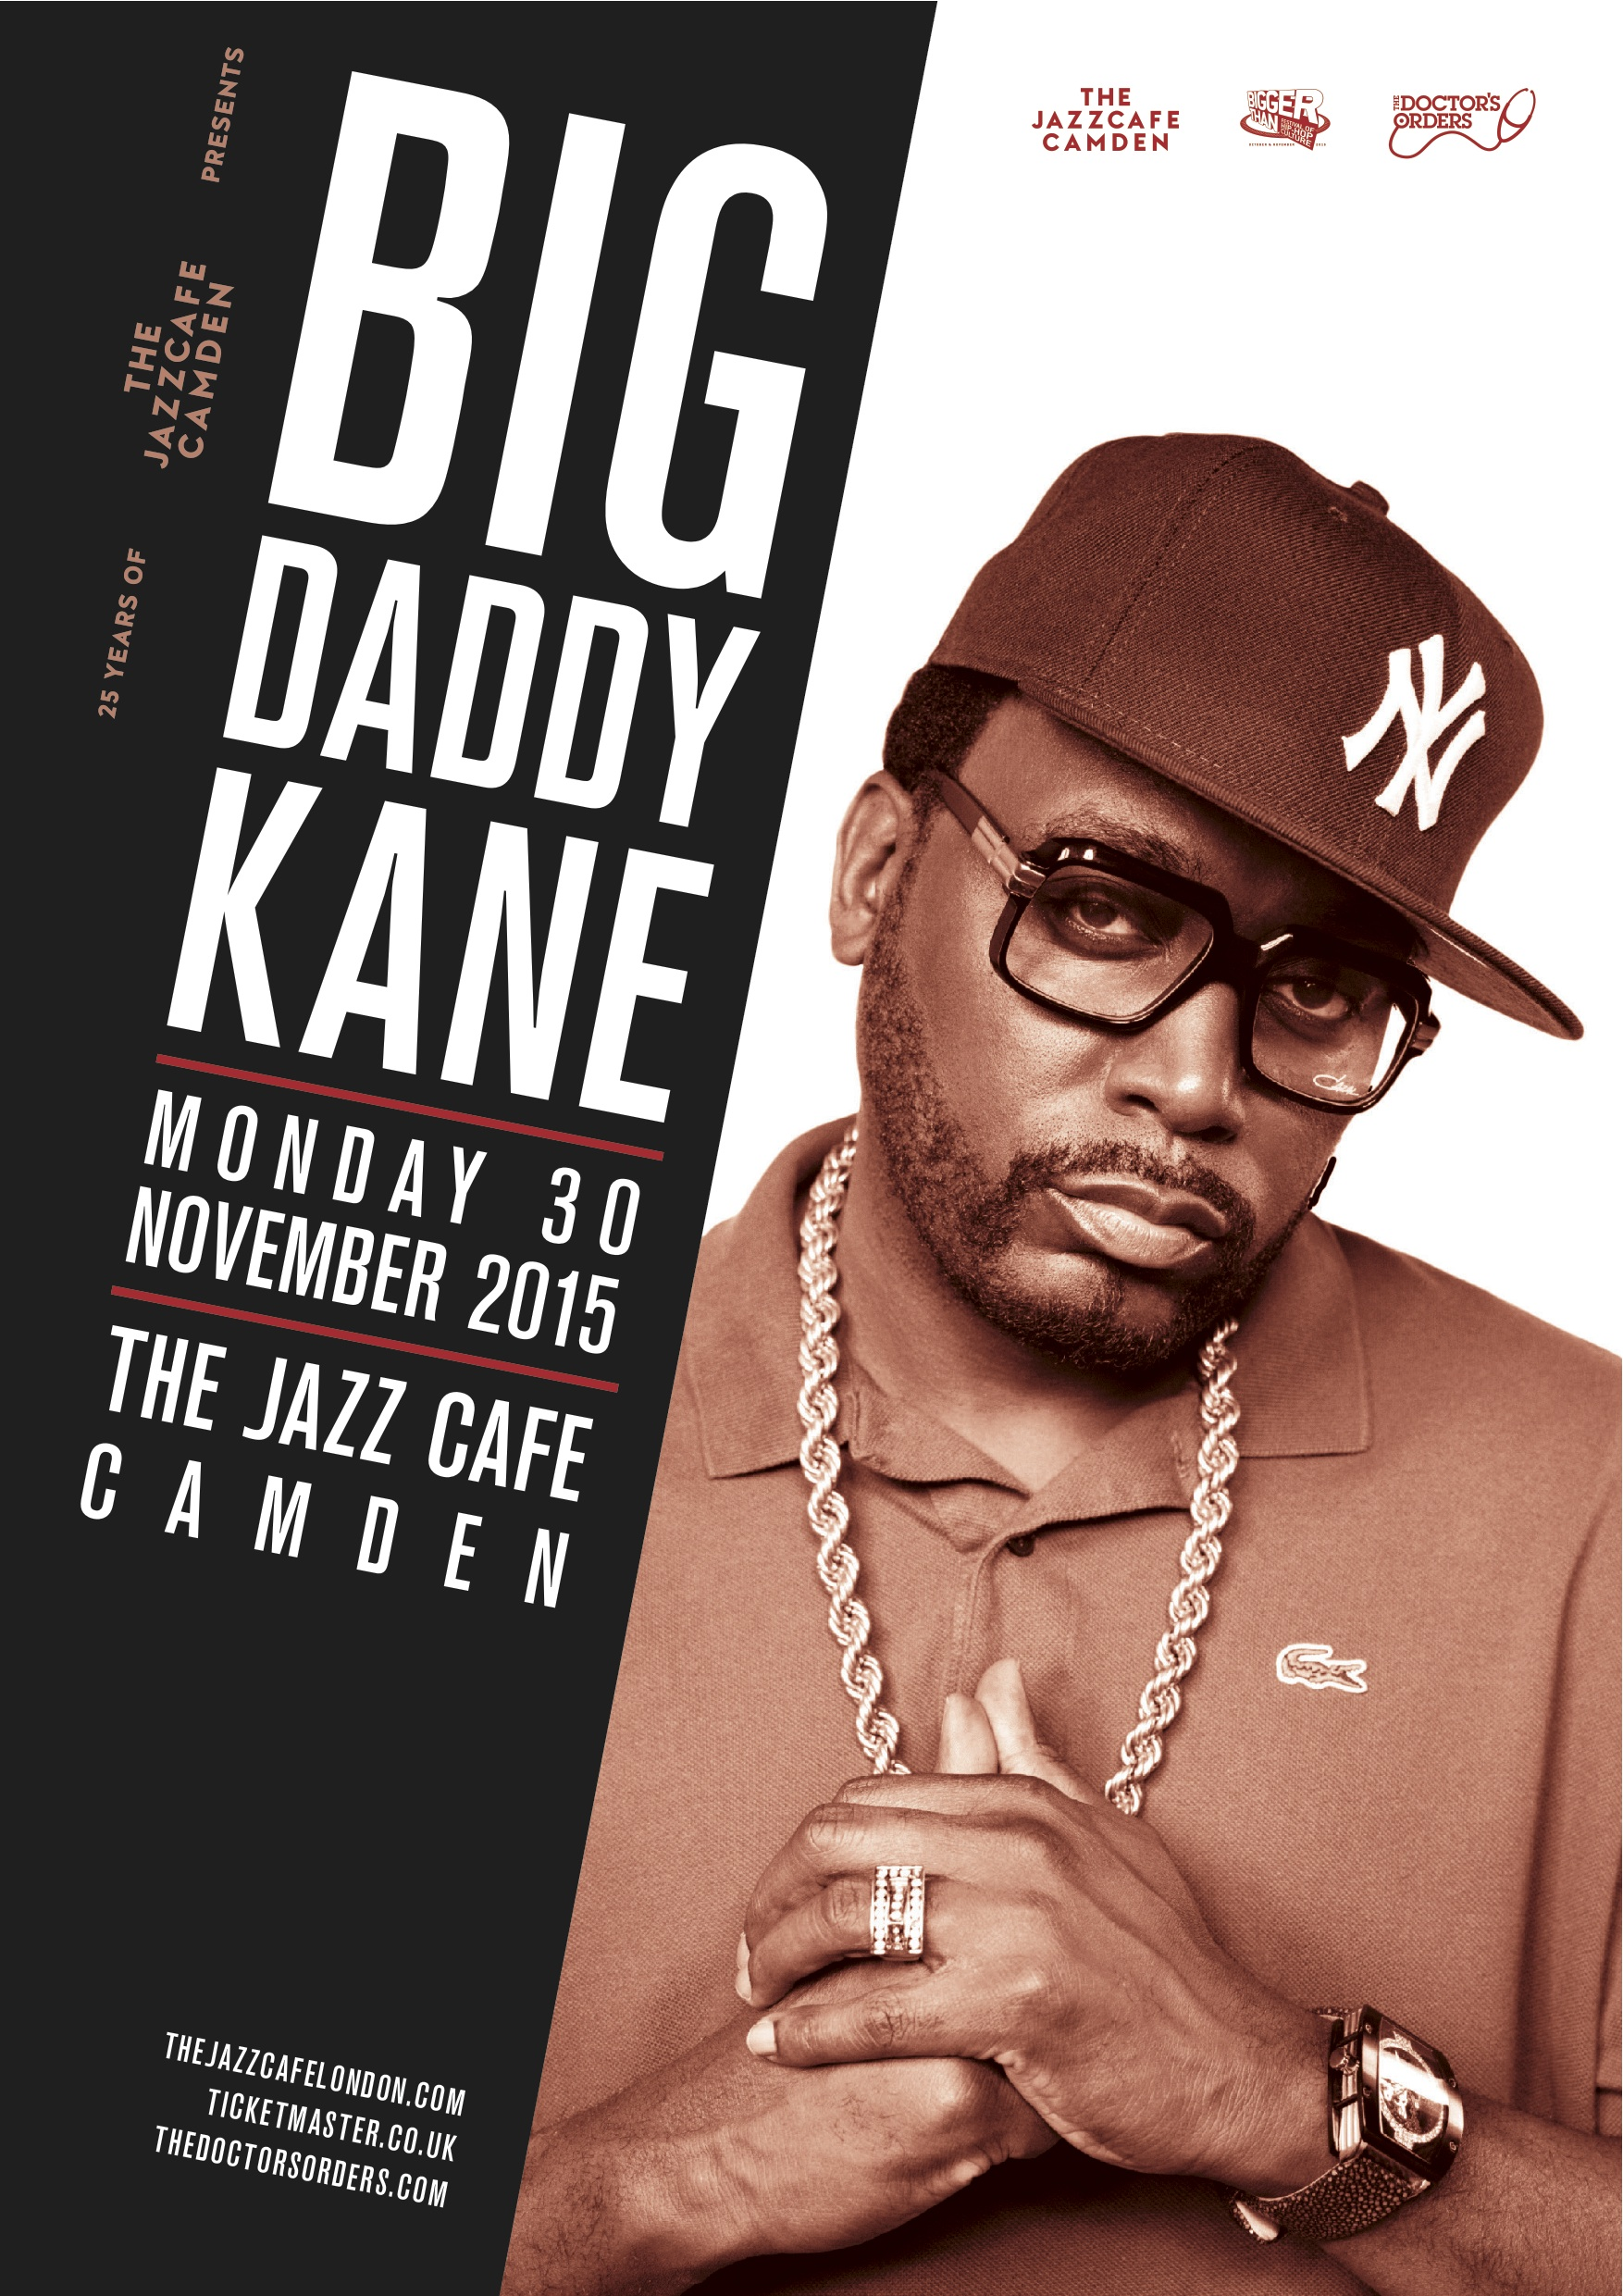 BigDaddyKane_JazzCafe_30Nov_A3Alternate